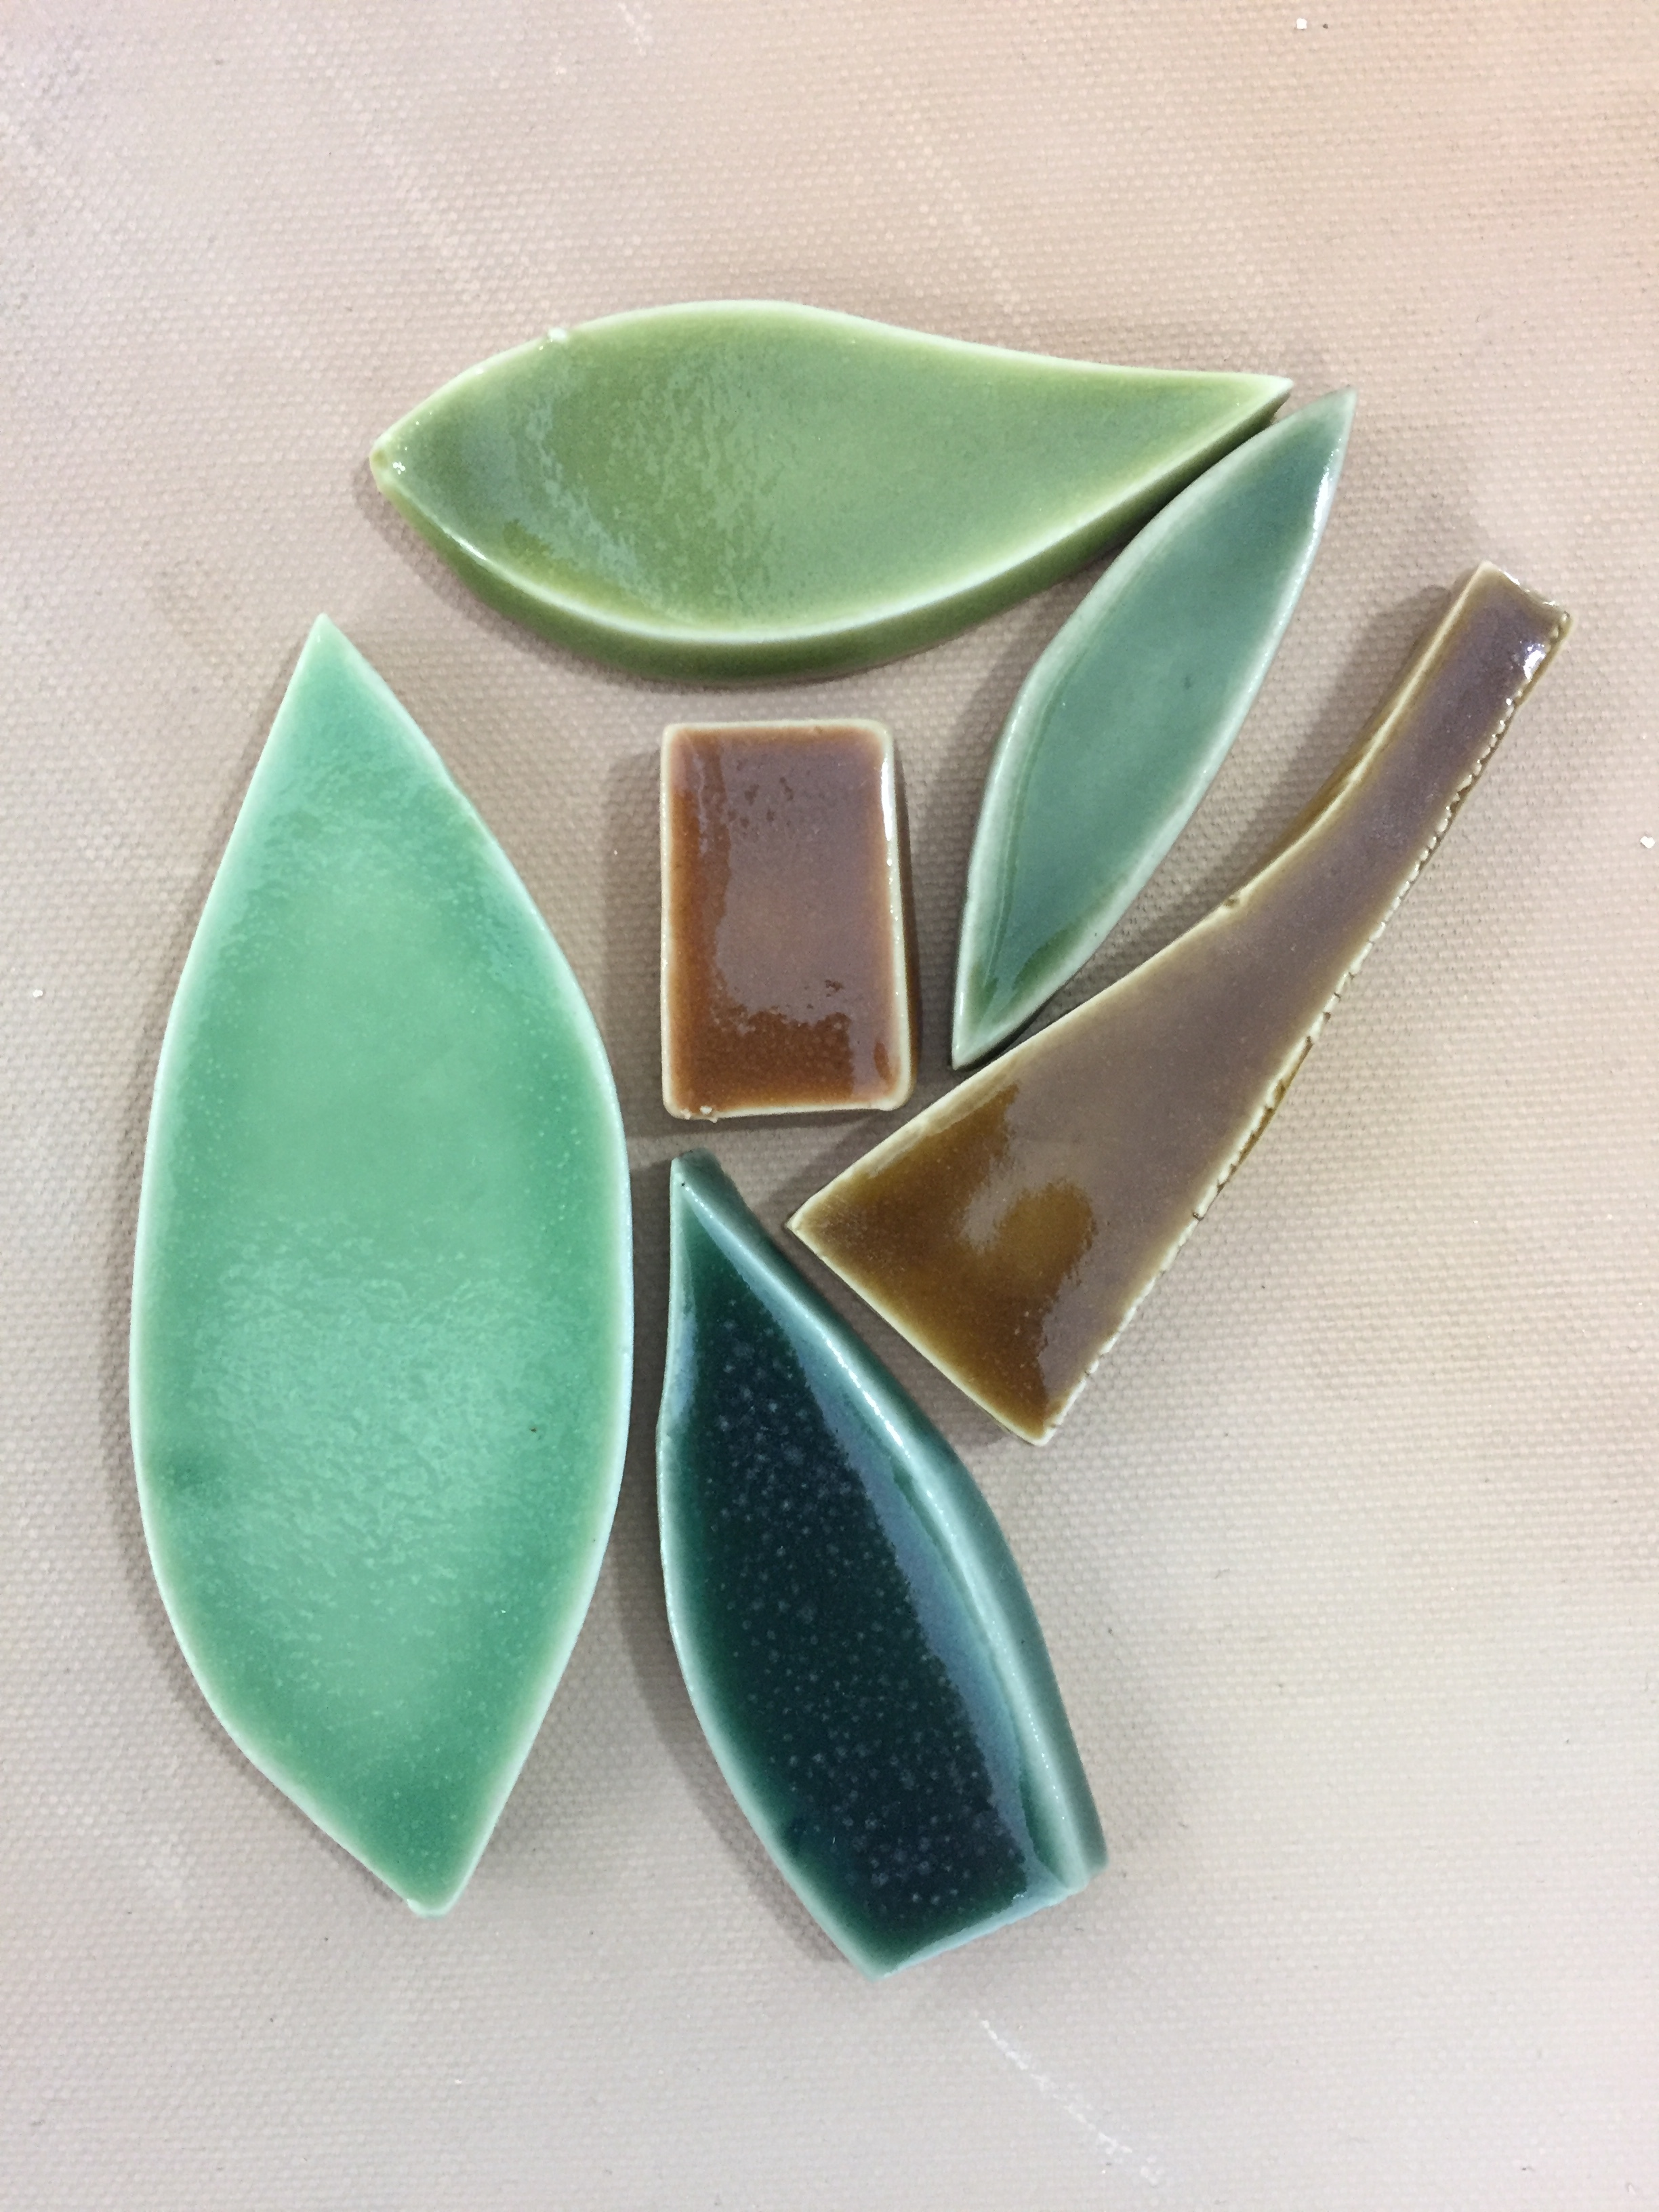 A collection of glaze colors for the mosaic.